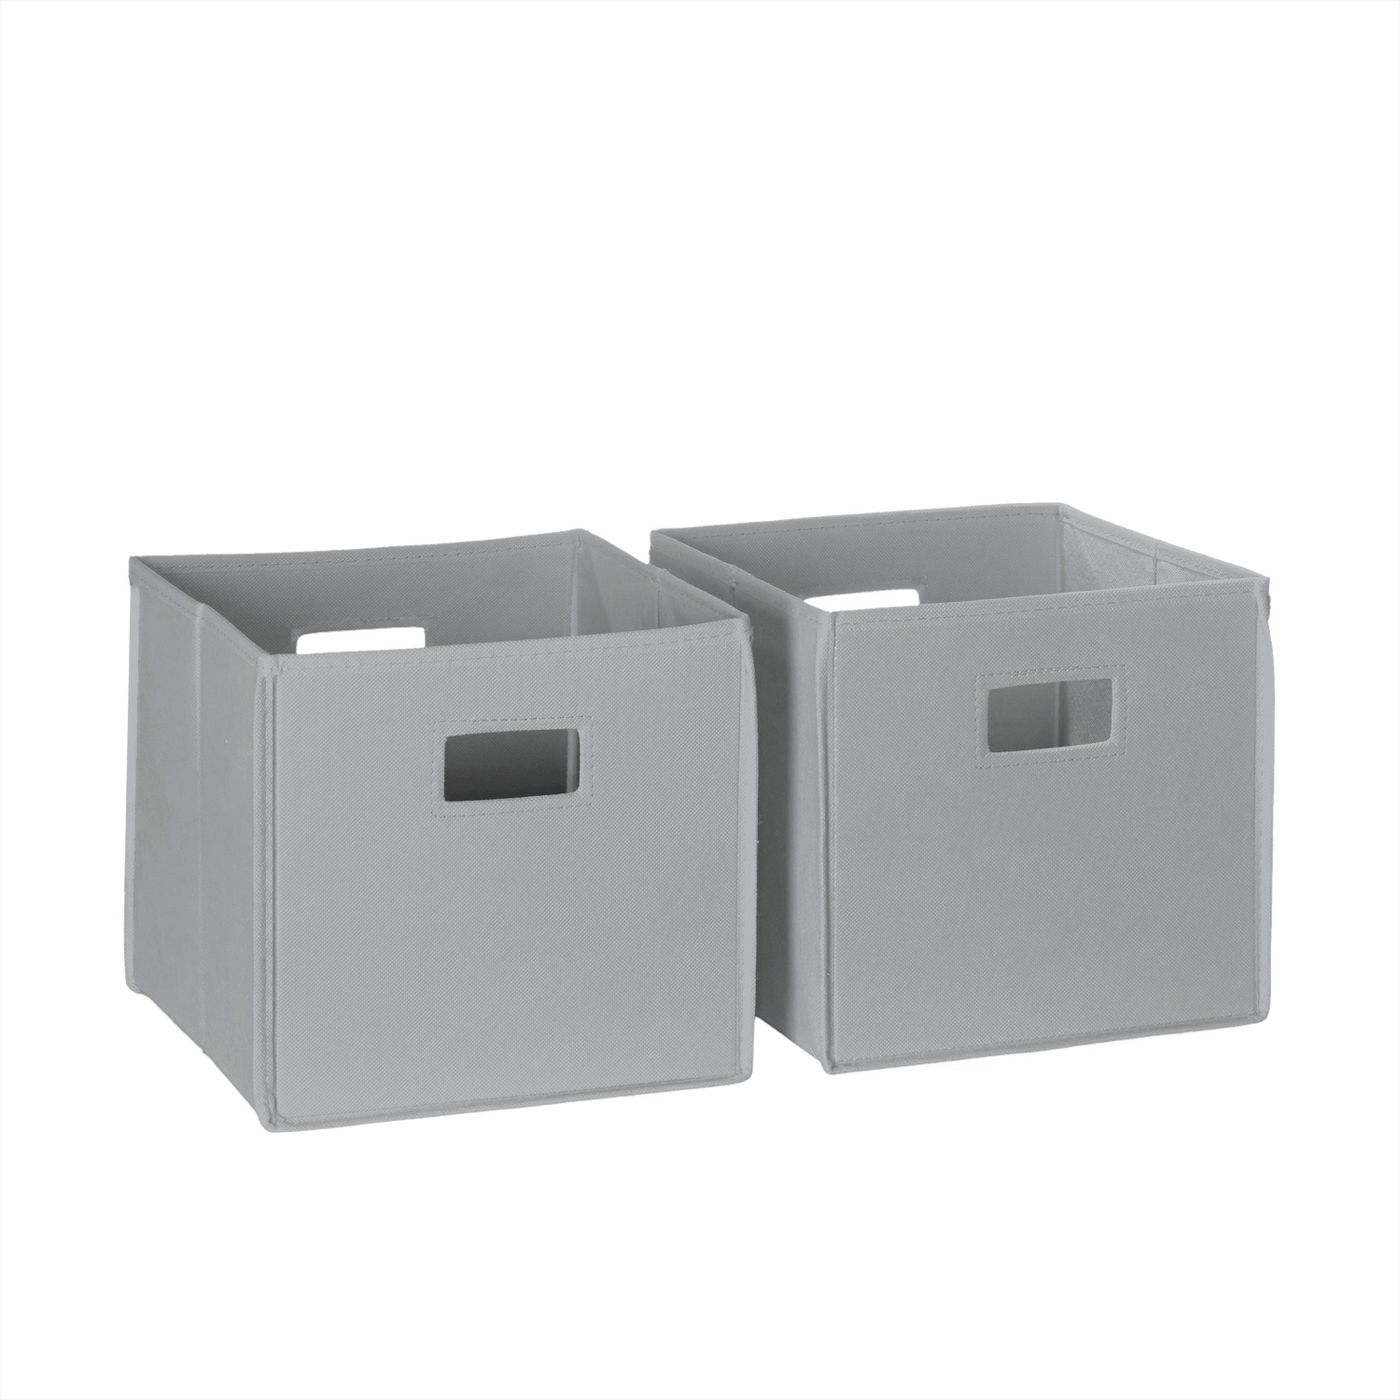 two gray bins